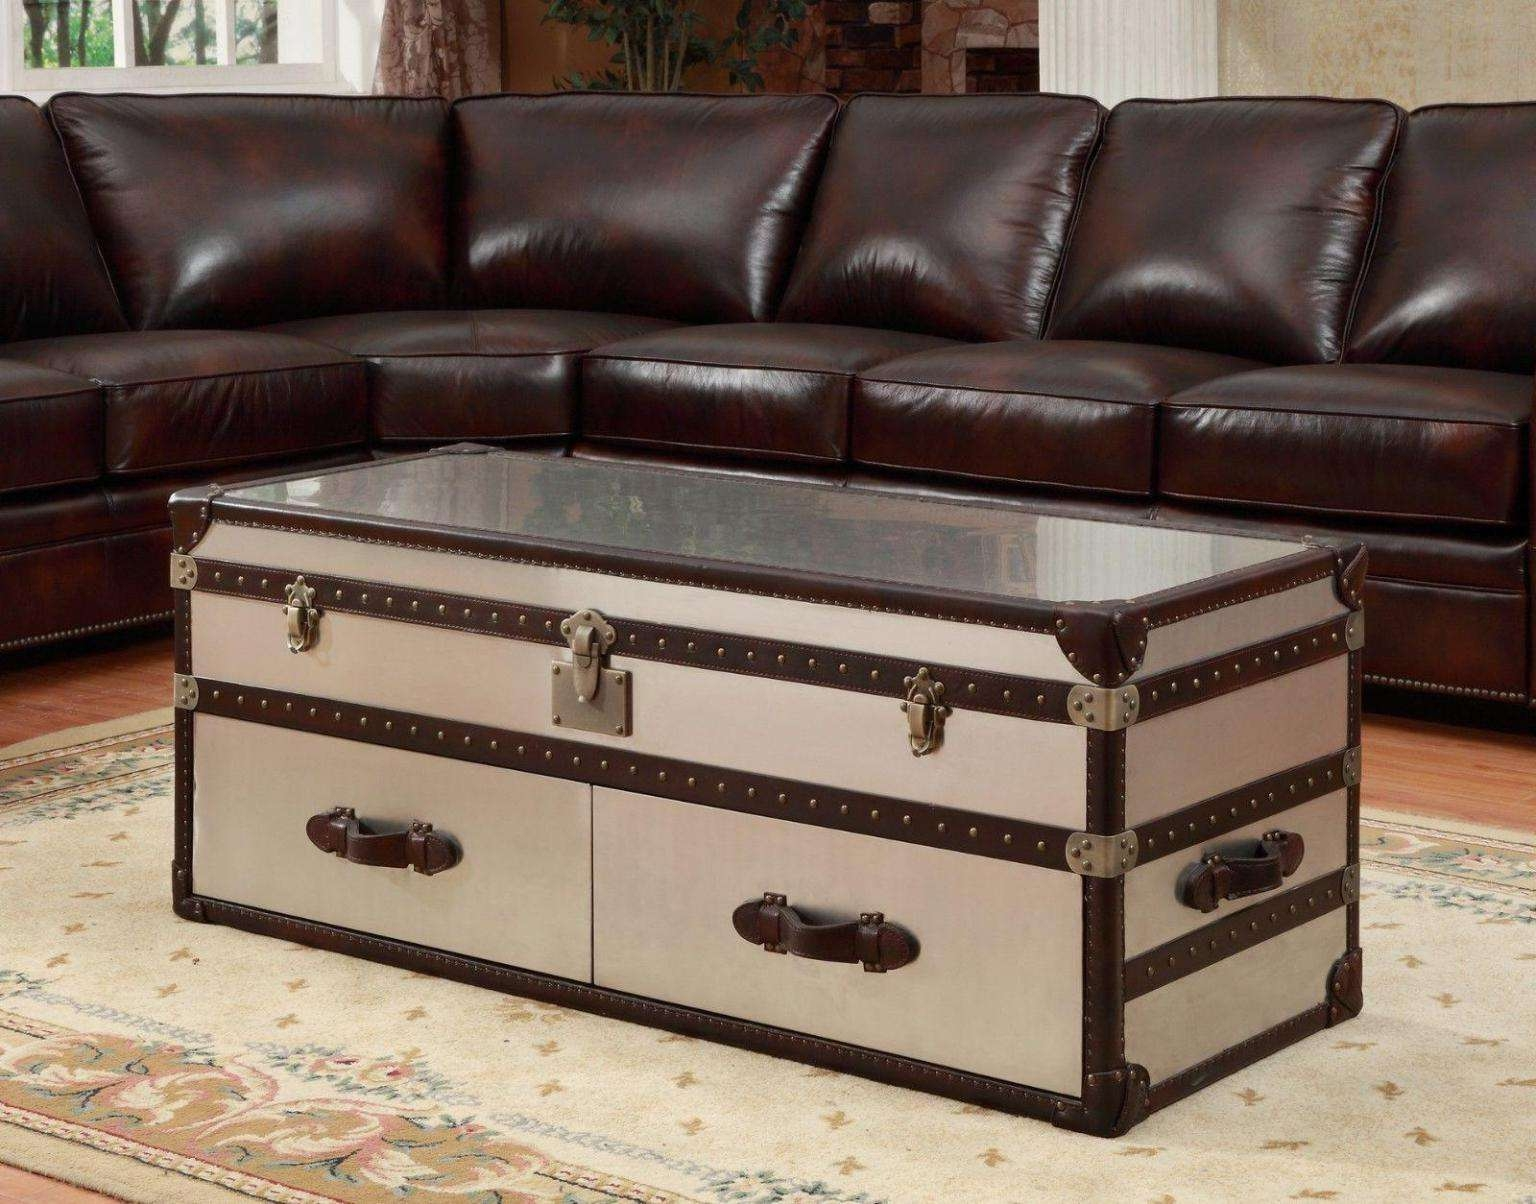 Coffee Tables : Antique Trunks For Sale Buy Trunk Coffee Table Within Favorite Trunks Coffee Tables (View 20 of 20)